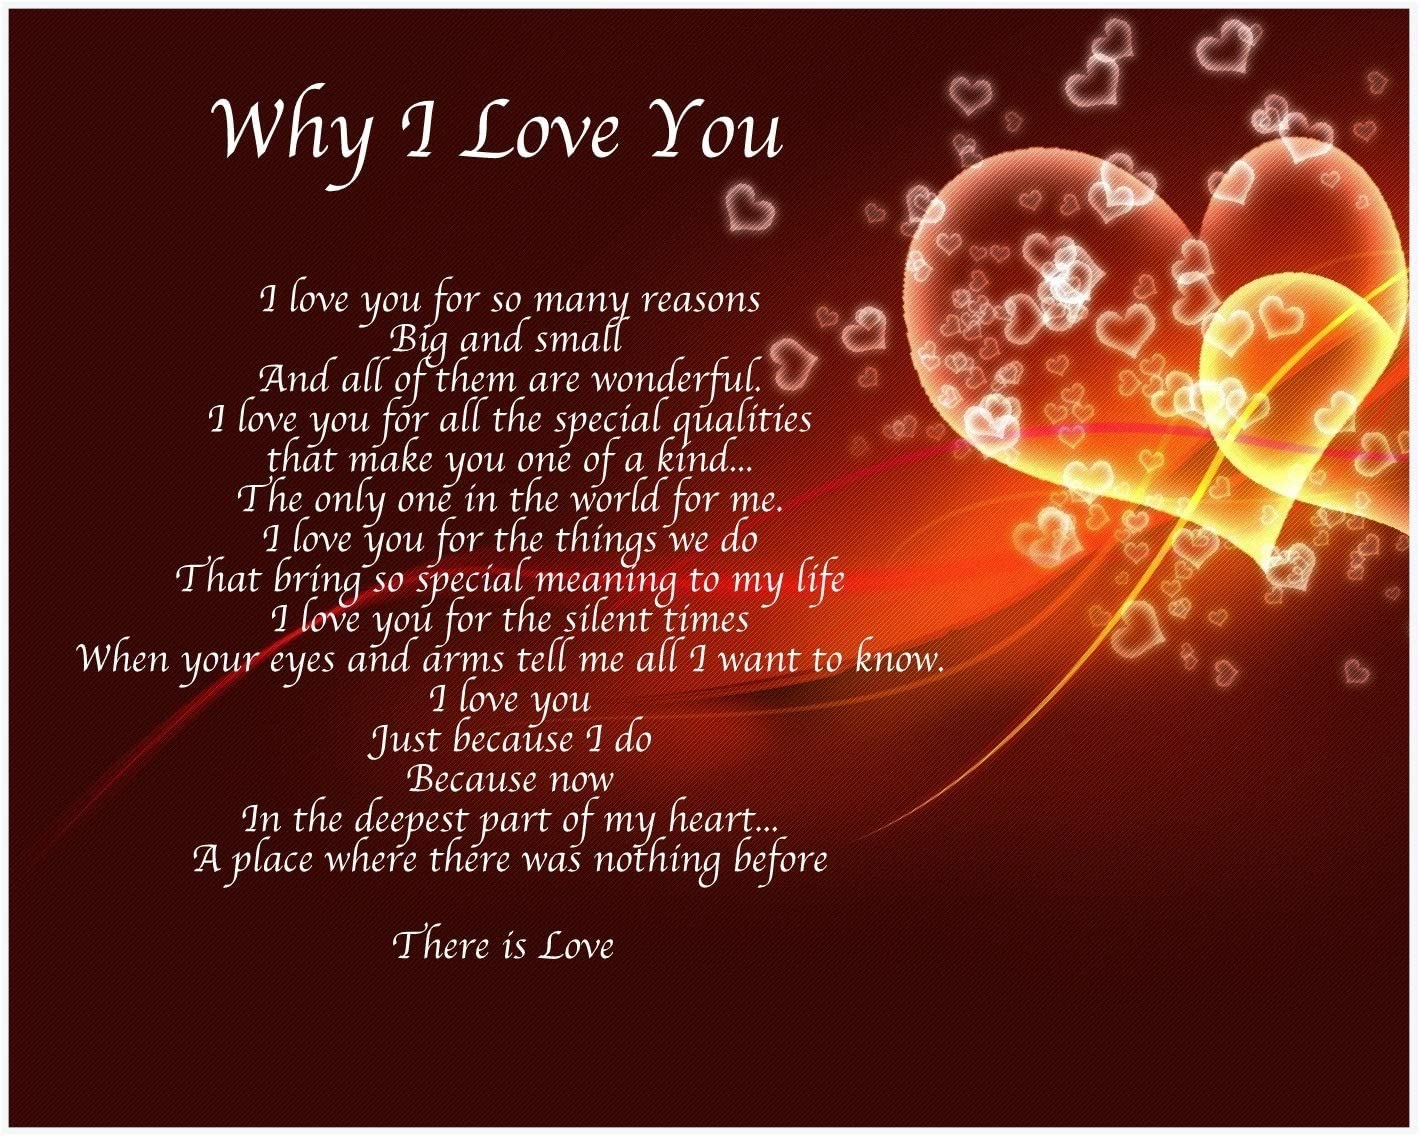 WHY I LOVE YOU Personalized Poem GIFT The PERFECT Valentine/'s Day Gift